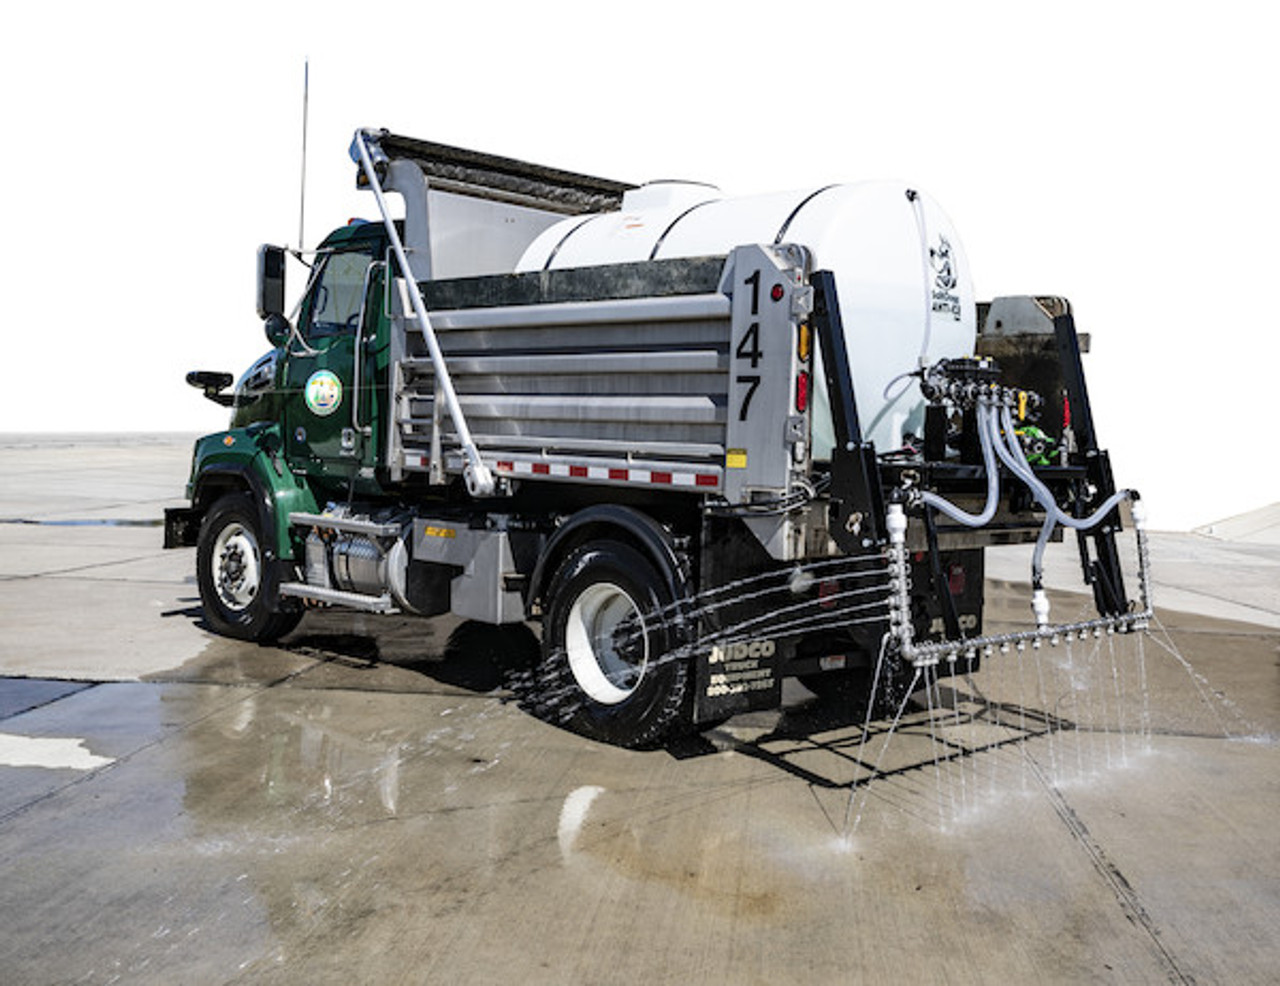 6192730 BUYERS SALTDOGG 1065 Gallon Hydraulic Anti-Ice System With One-Lane Spray Bar And Manual Application Rate Control  #4